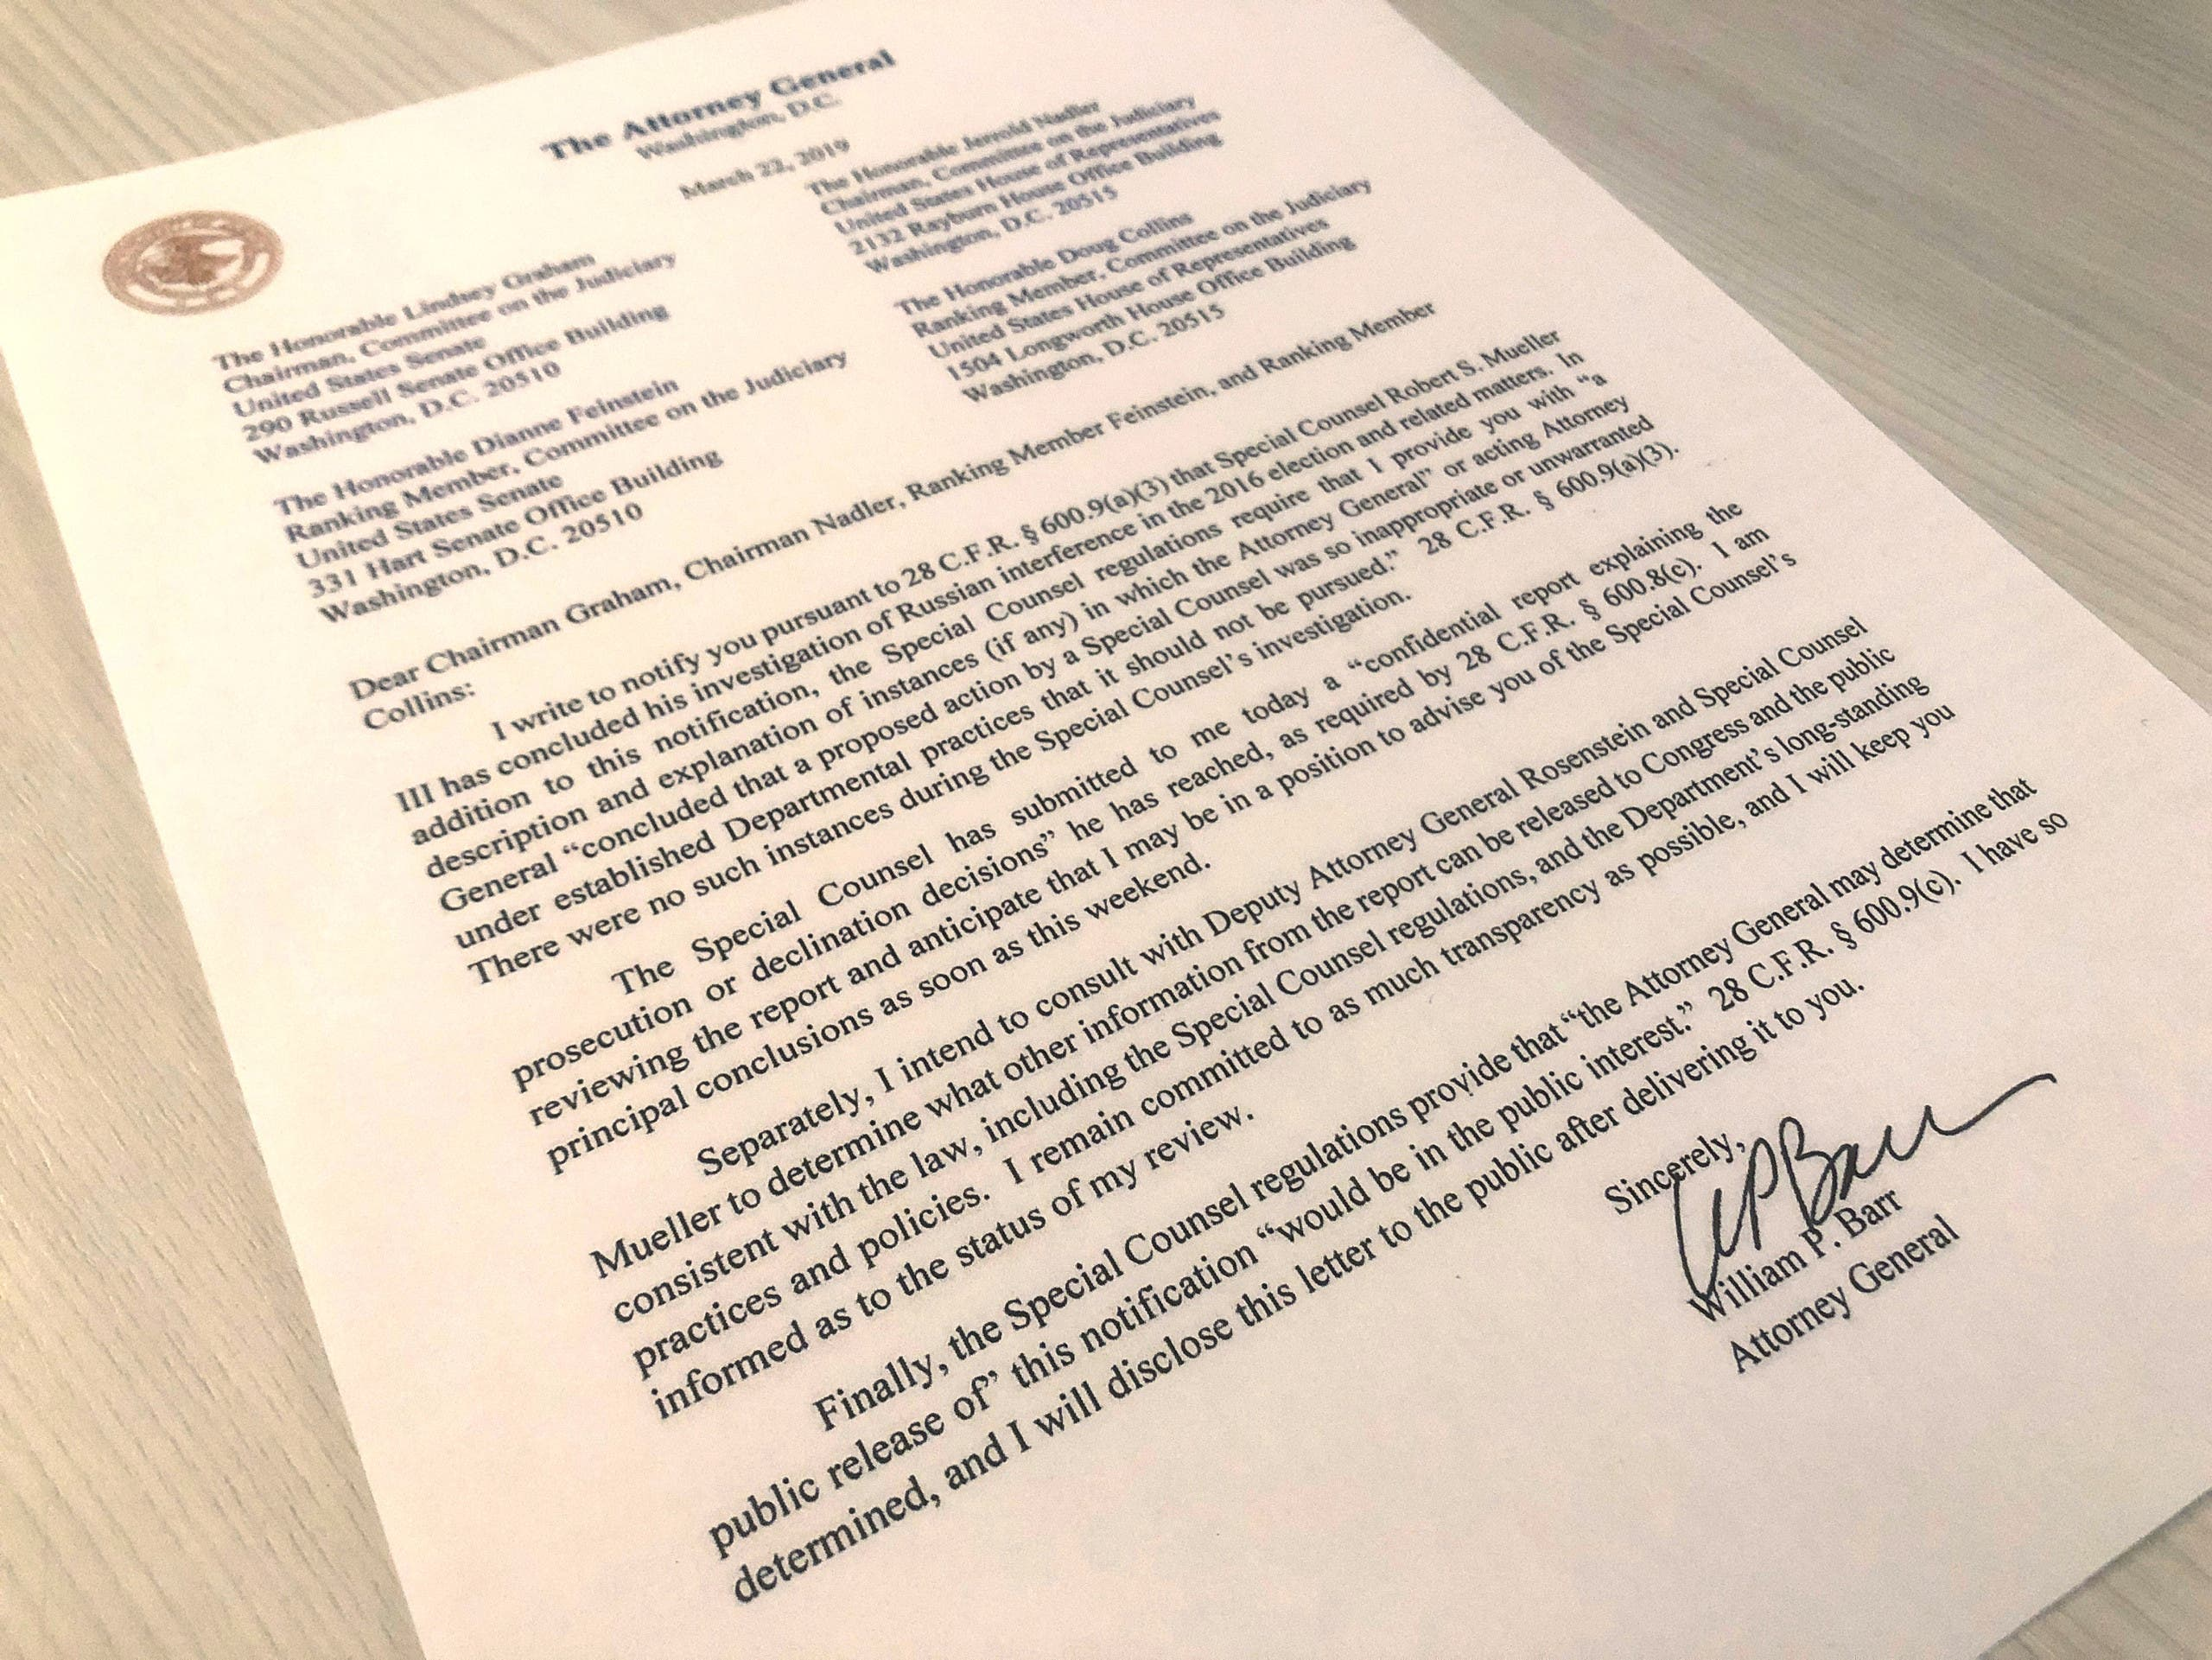 U.S. Attorney General William Barr's letter to U.S. lawmakers stating that the investigation by Special Counsel Robert Mueller has been concluded and that Mueller has submitted his report to the Attorney General is seen in Washington, U.S. March 22, 2019. REUTERS/Jim Bourg